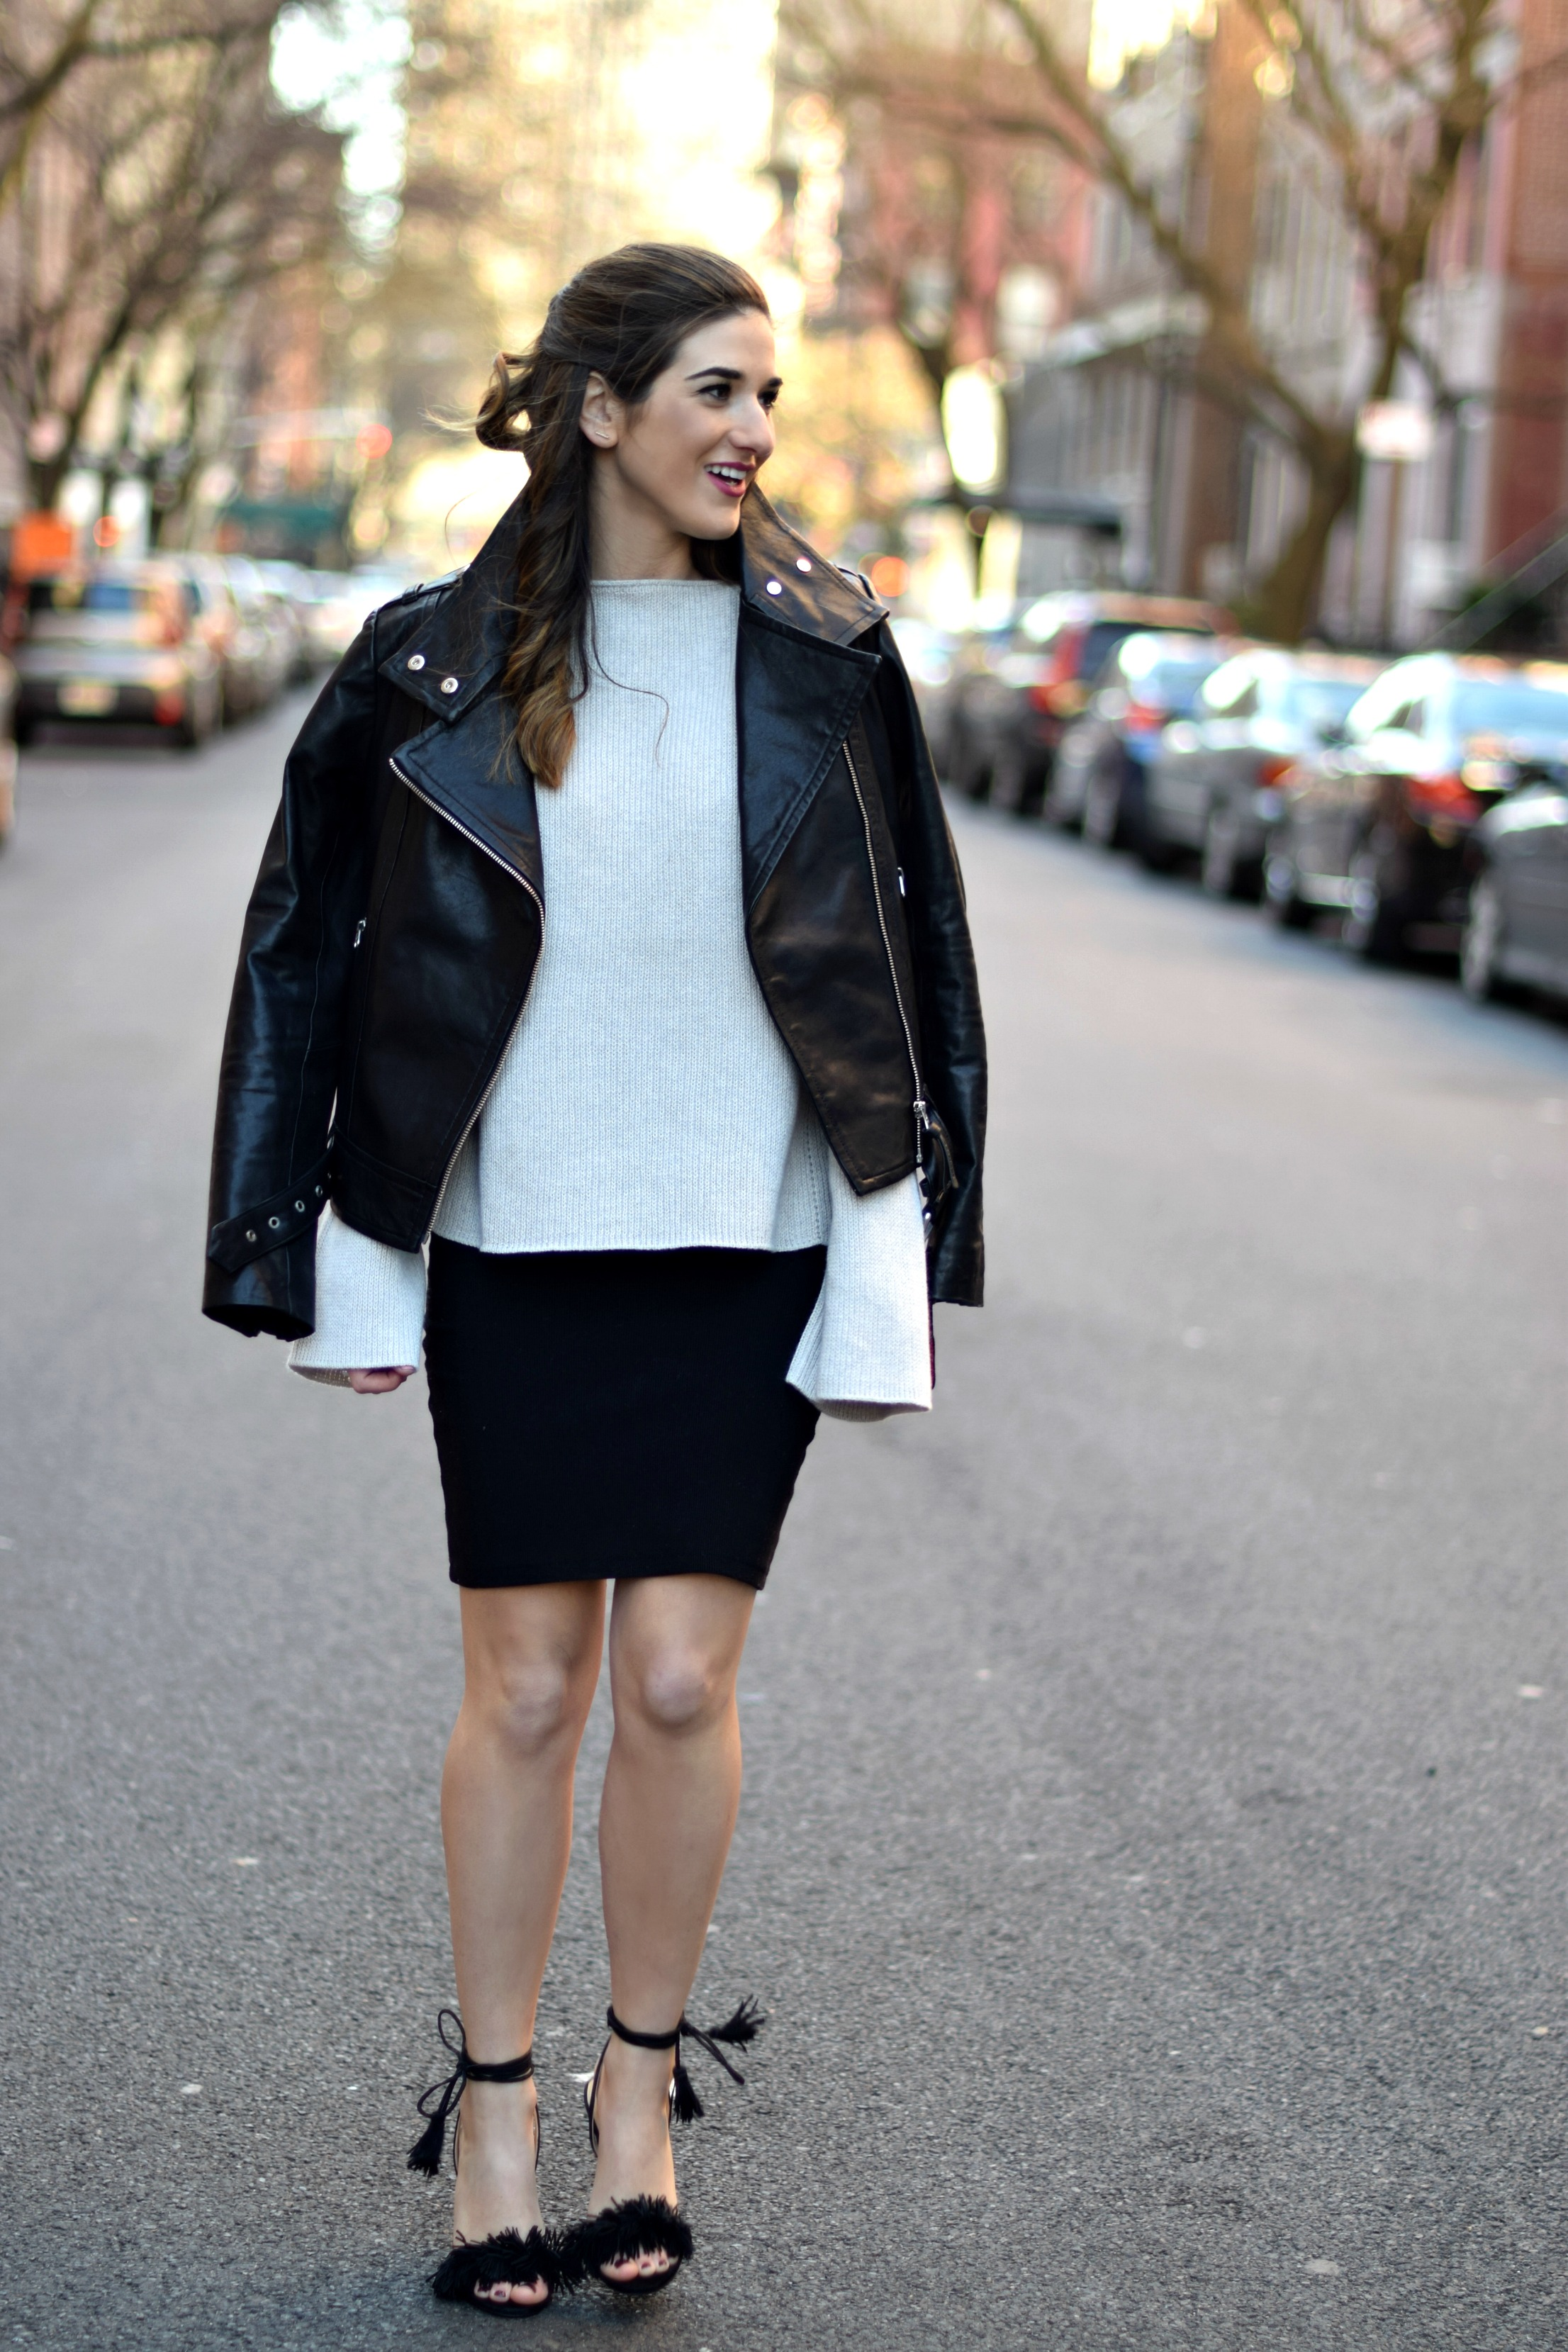 Ivanka Trump Fringe Sandals Mackage Moto Jacket Louboutins & Love Fashion Blog Esther Santer NYC Street Style Blogger Outfit OOTD Leather Summer Spring Designer Clothes Shop Model Photoshoot Skirt Helmut Lang Sweater Beautiful Pretty Shoes Girl Women.jpg